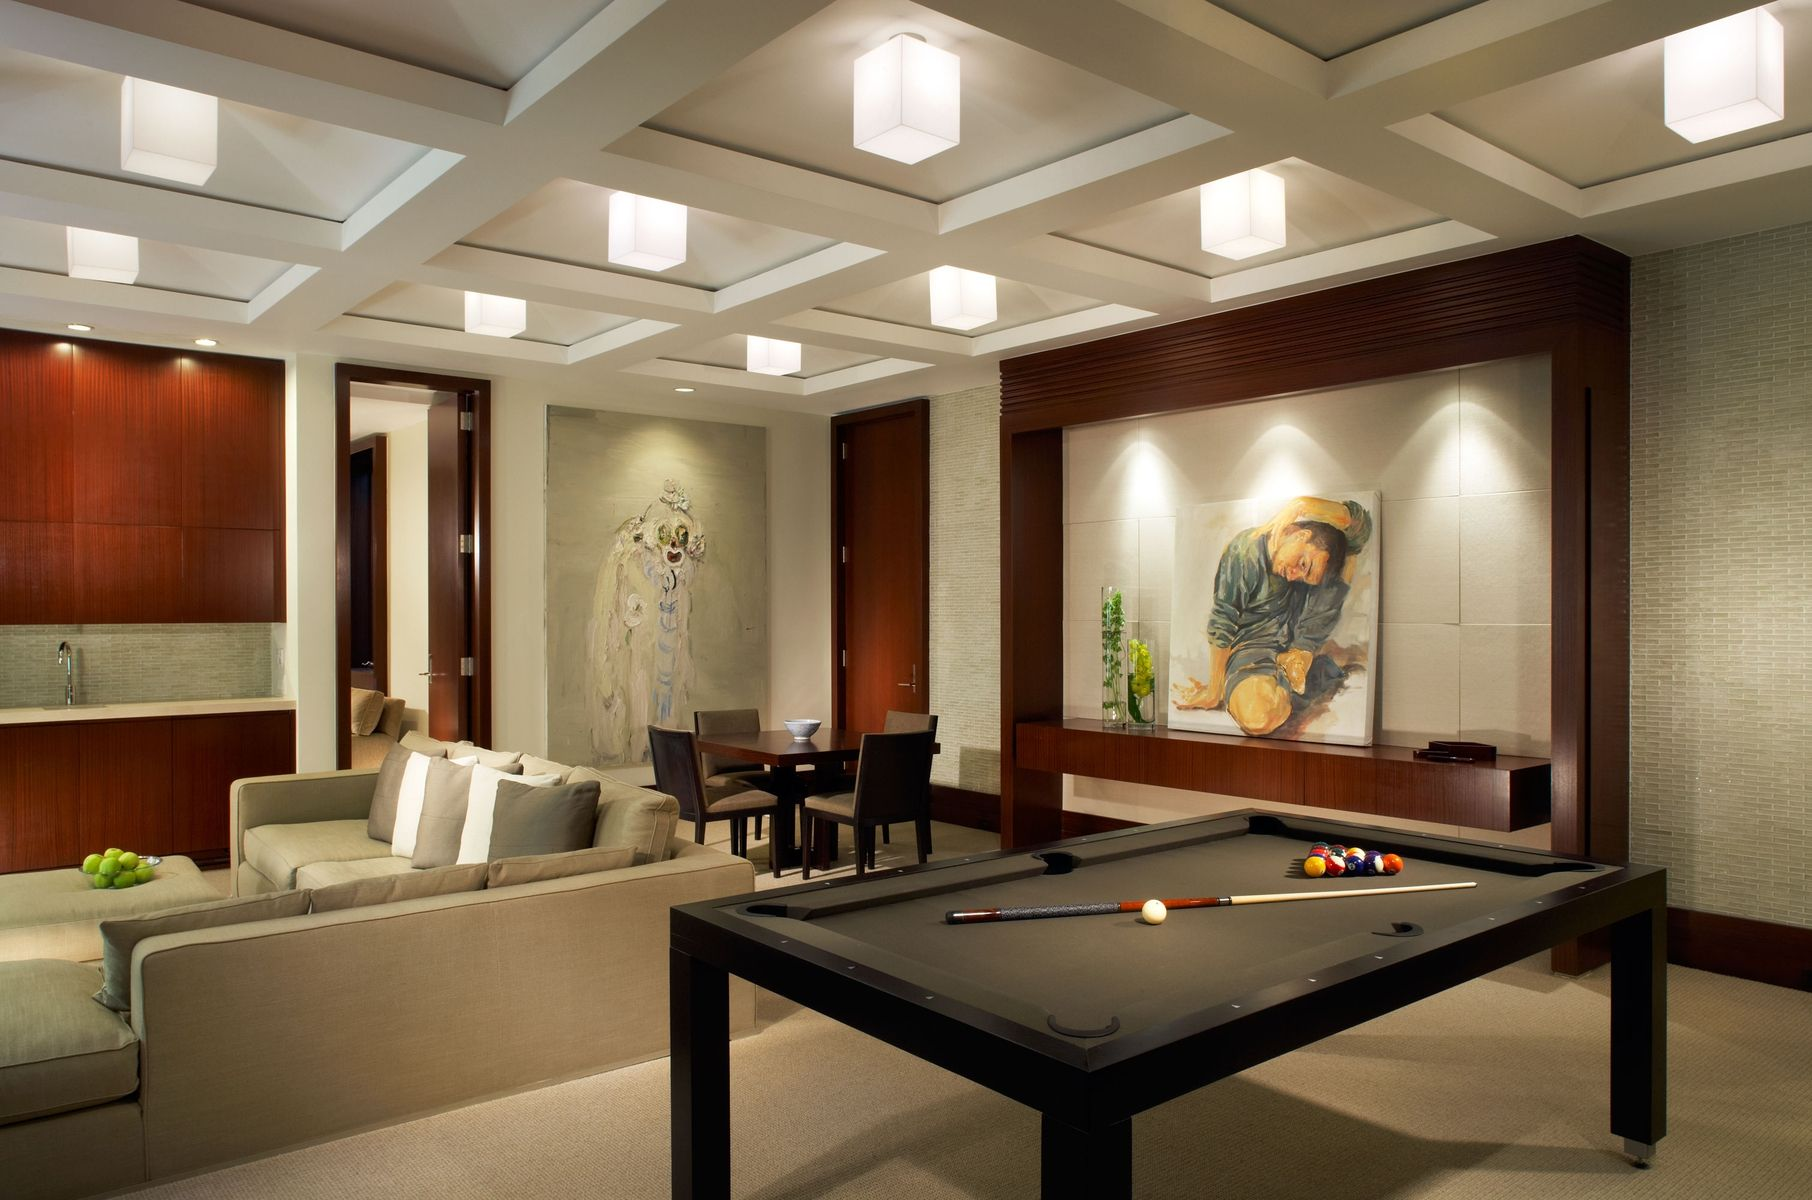 Custom made game room by vogue furniture Design this home game ideas